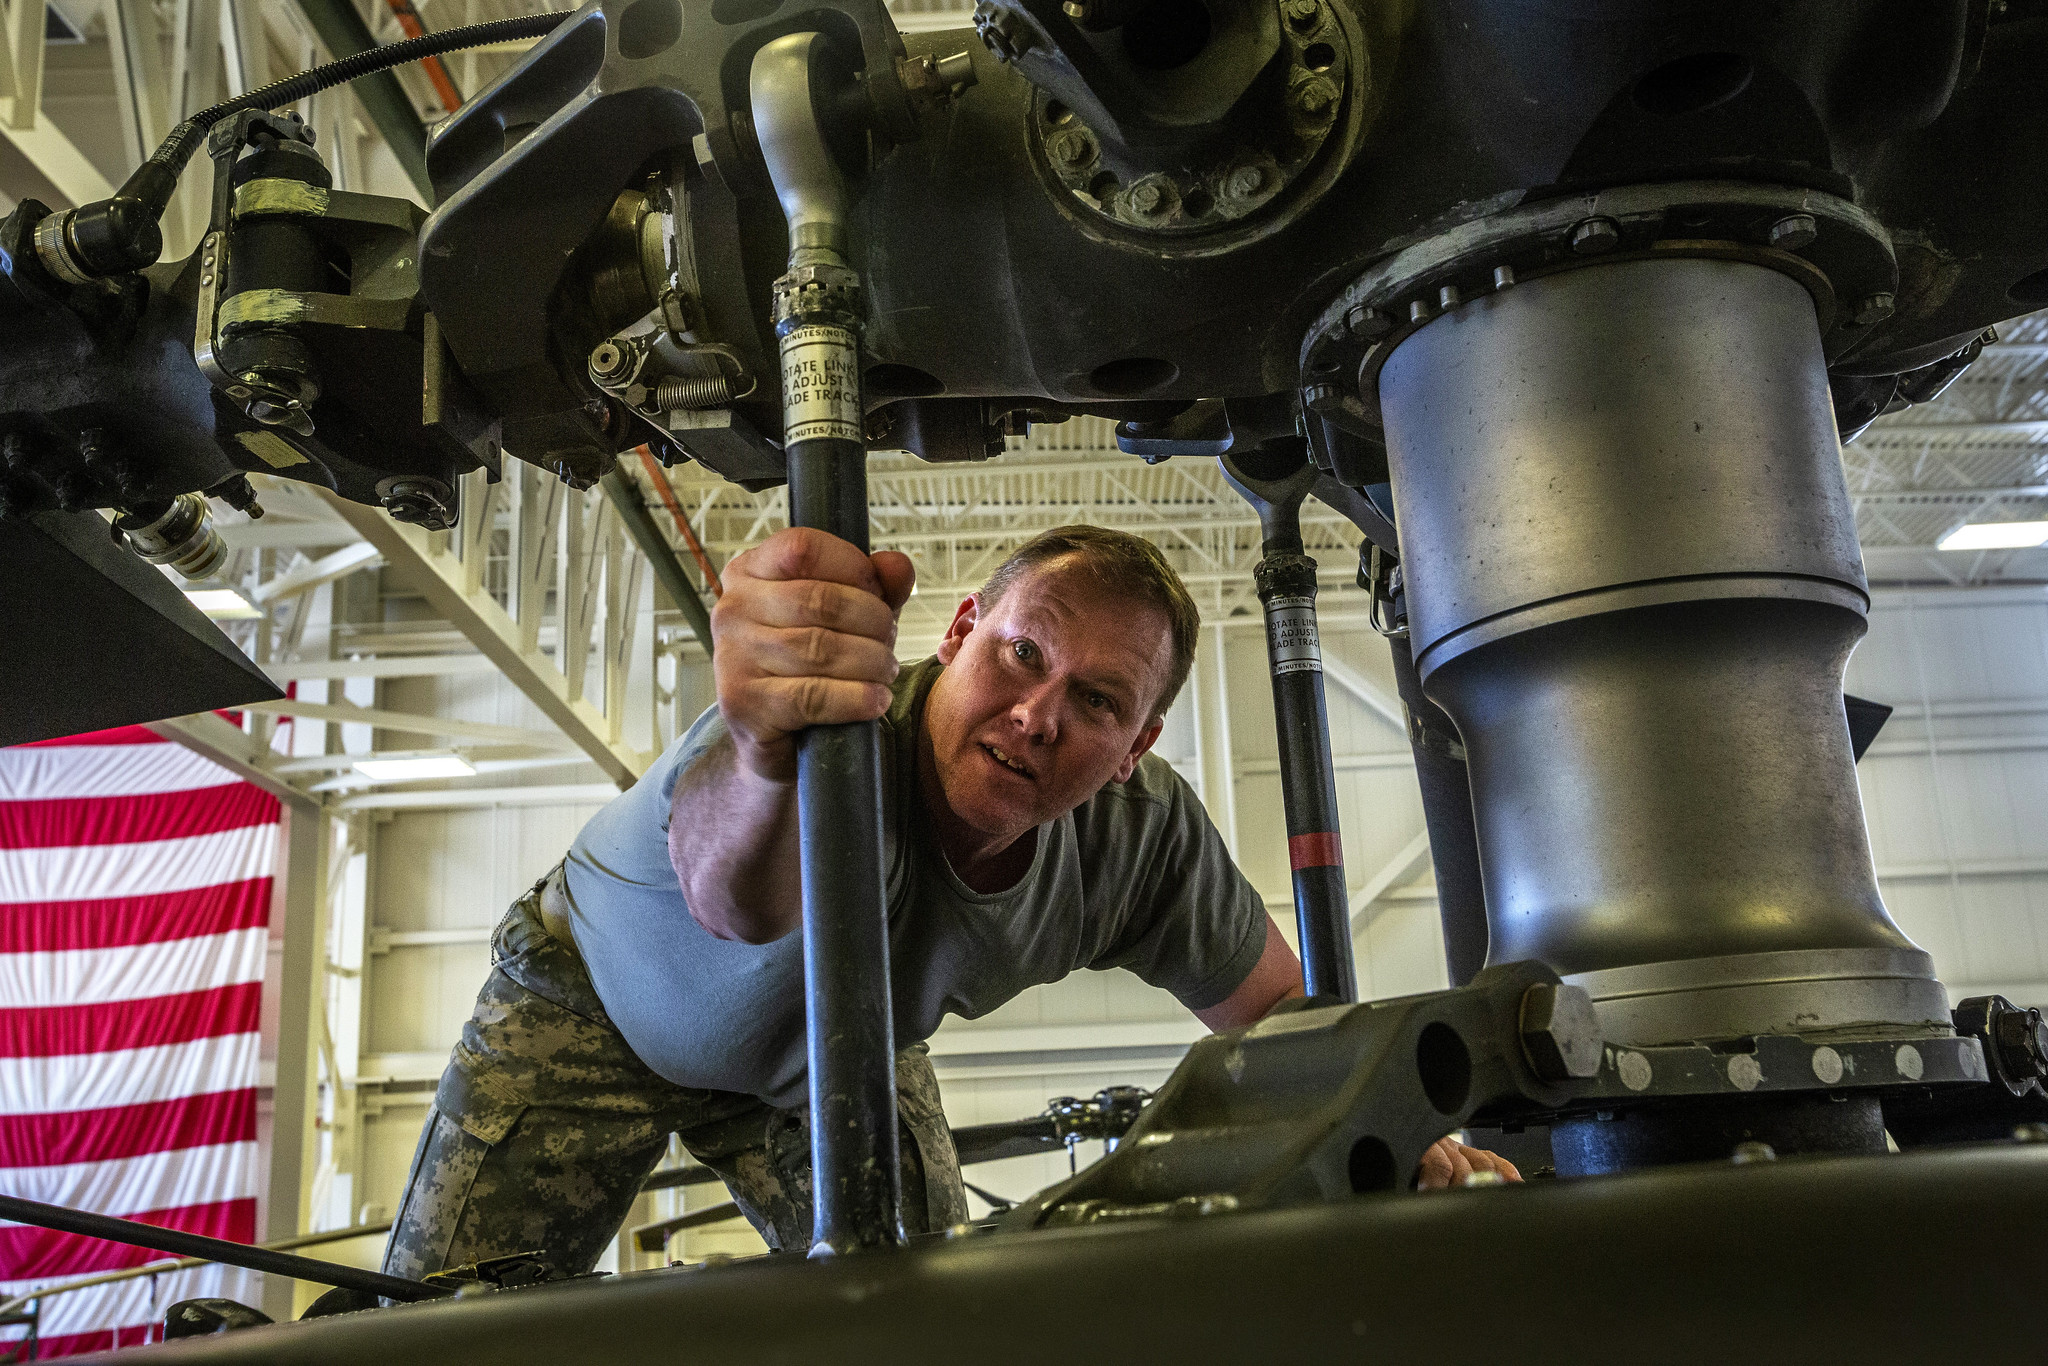 Chief Warrant Officer 3 Charles E. Fisher, a UH-60L Black Hawk helicopter pilot with the New Jersey Army National Guard, performs a final check April 17, 2019, during maintenance at the Army Aviation Support Facility at Joint Base McGuire-Dix-Lakehurst, N.J. (Mark C. Olsen/Army National Guard )